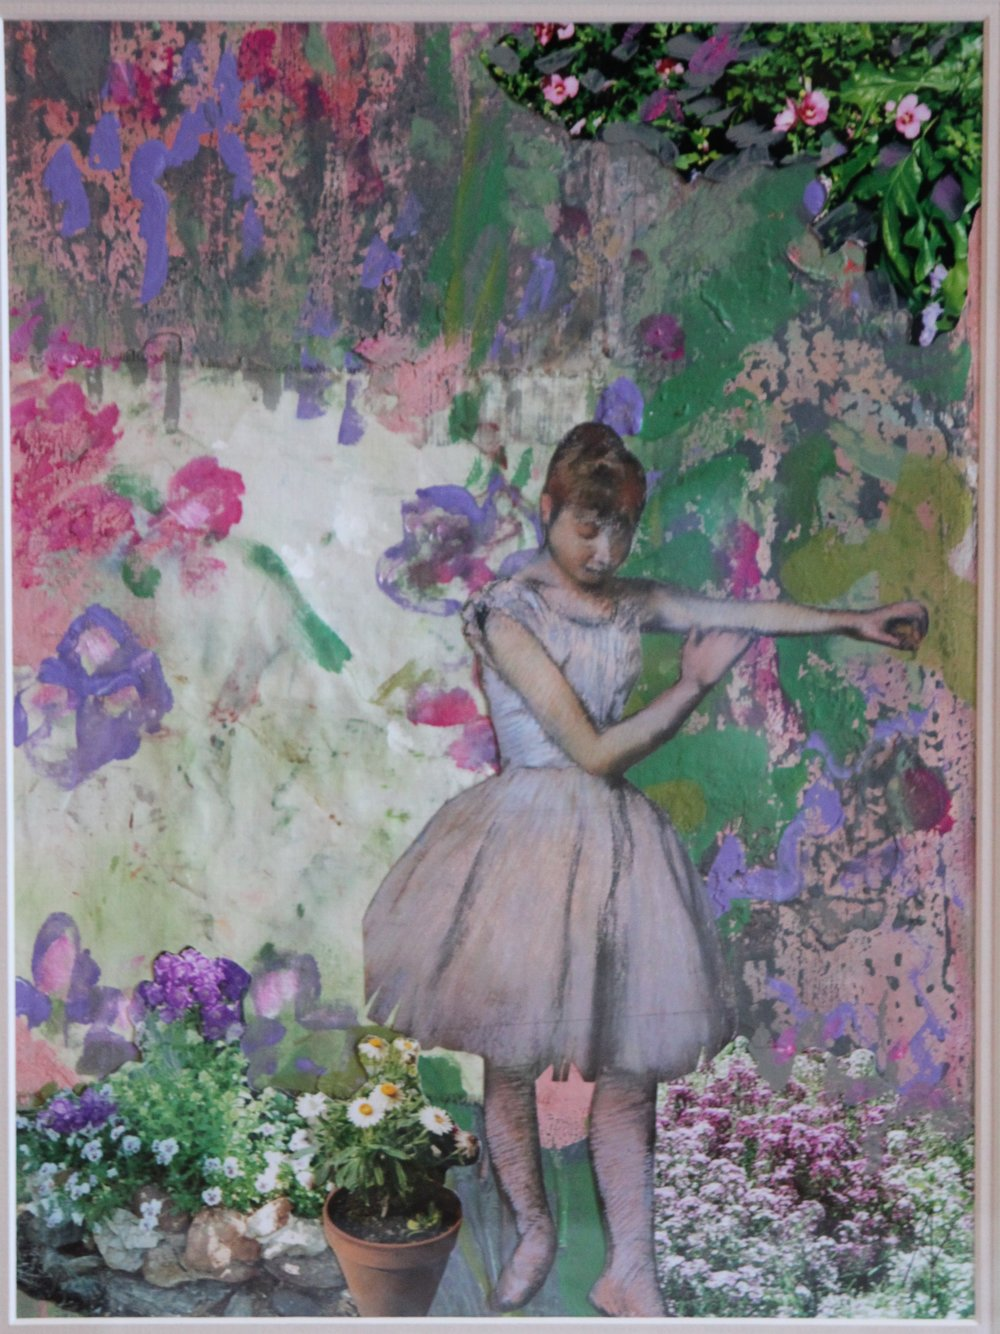 TITLE:  Degas's garden 2  MEDIUM: Acrylic paint and collage on paper DIMENSIONS: H59 x W49cm  FRAMED